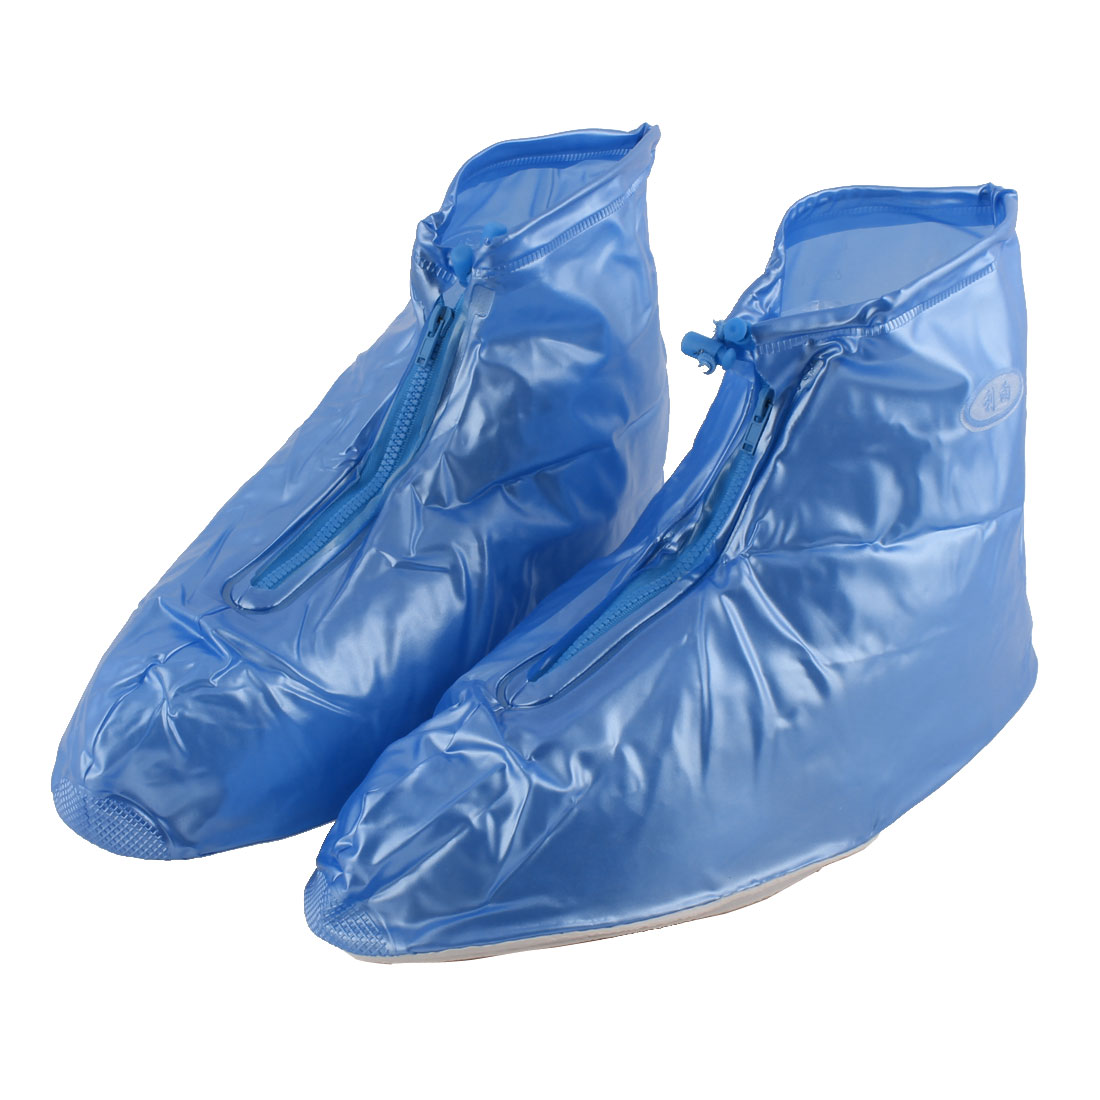 Man PVC Zippered Snow Water Resistant Rain Shoes Overshoes Boot Covers Blue Pair